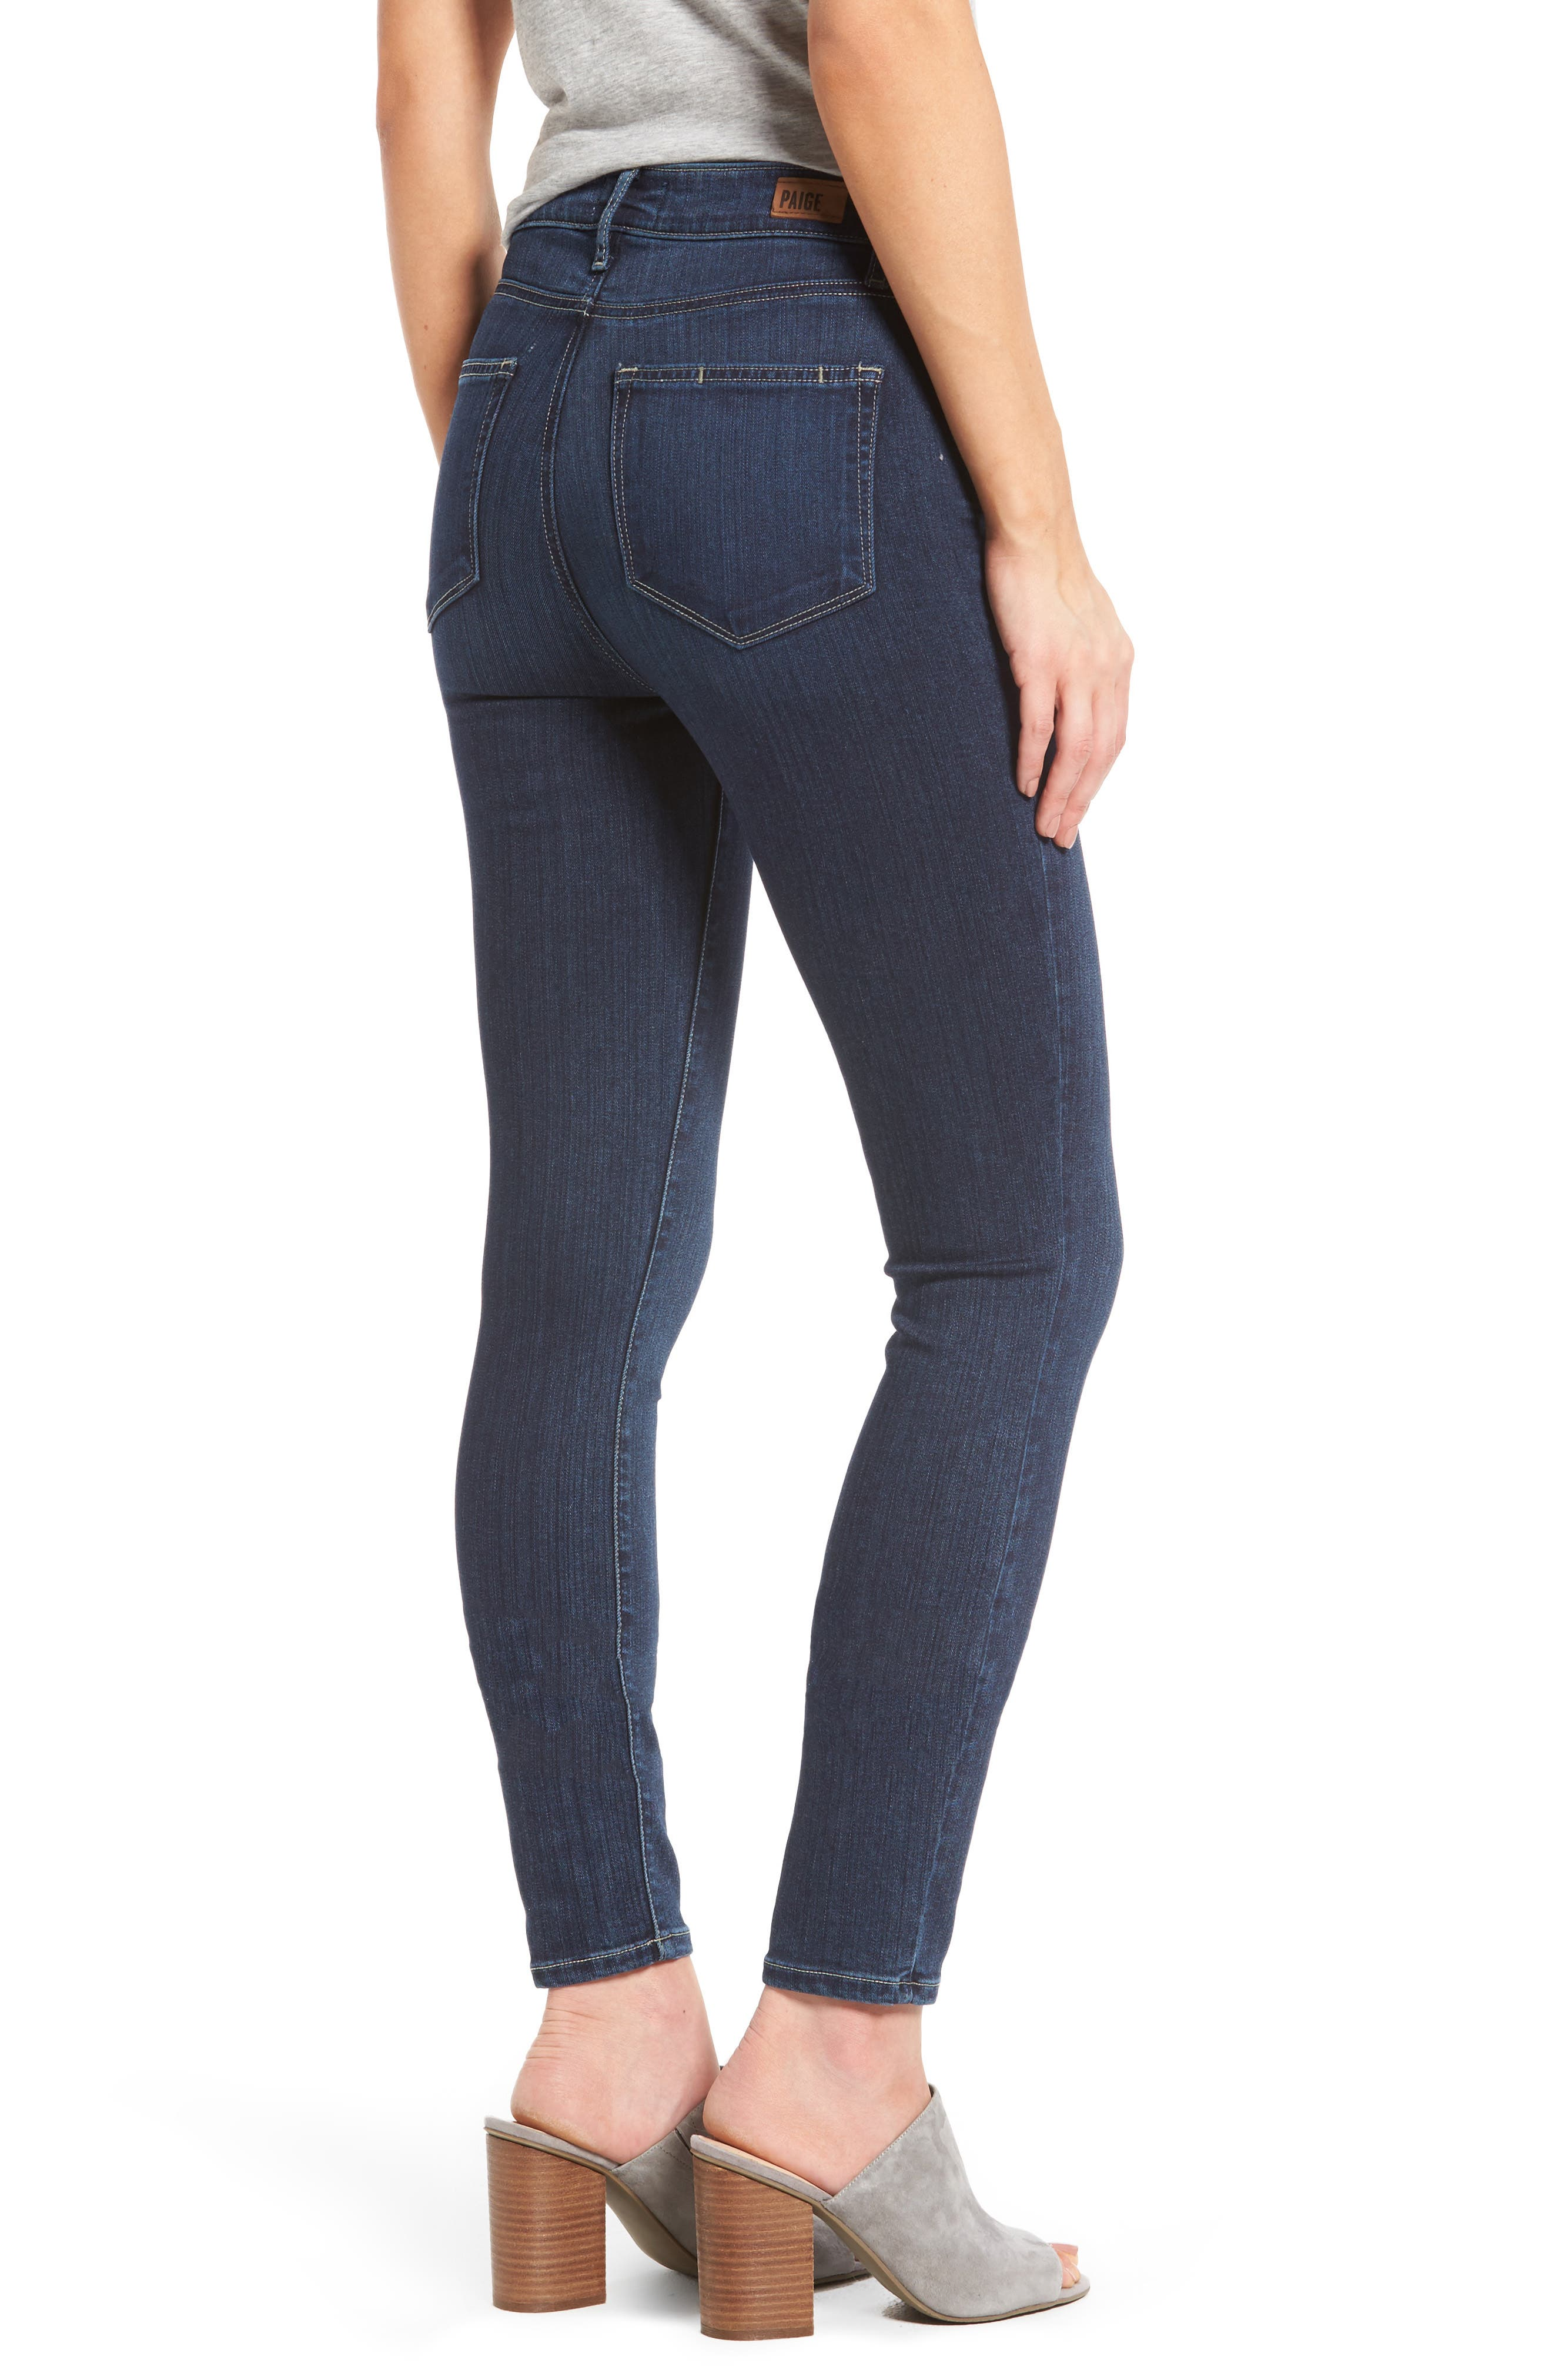 Transcend - Hoxton High Waist Ankle Skinny Jeans,                             Alternate thumbnail 2, color,                             CHARING